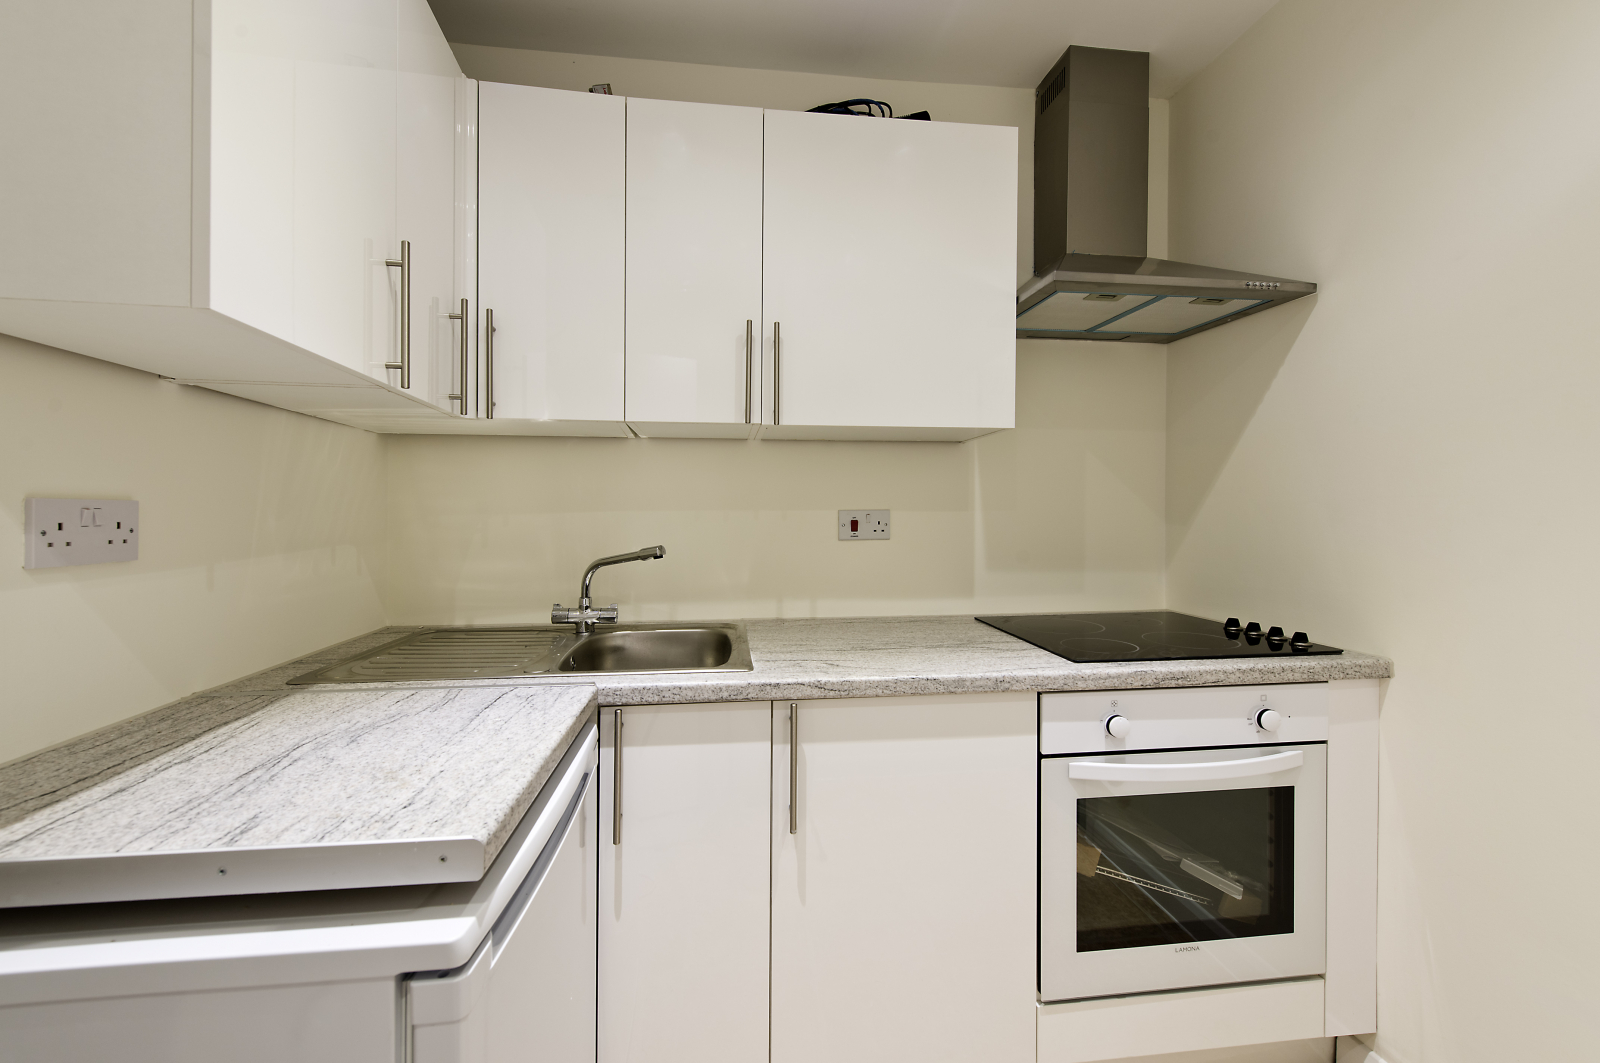 1 bed house share to rent in Charleville road, West Kensington, London 2